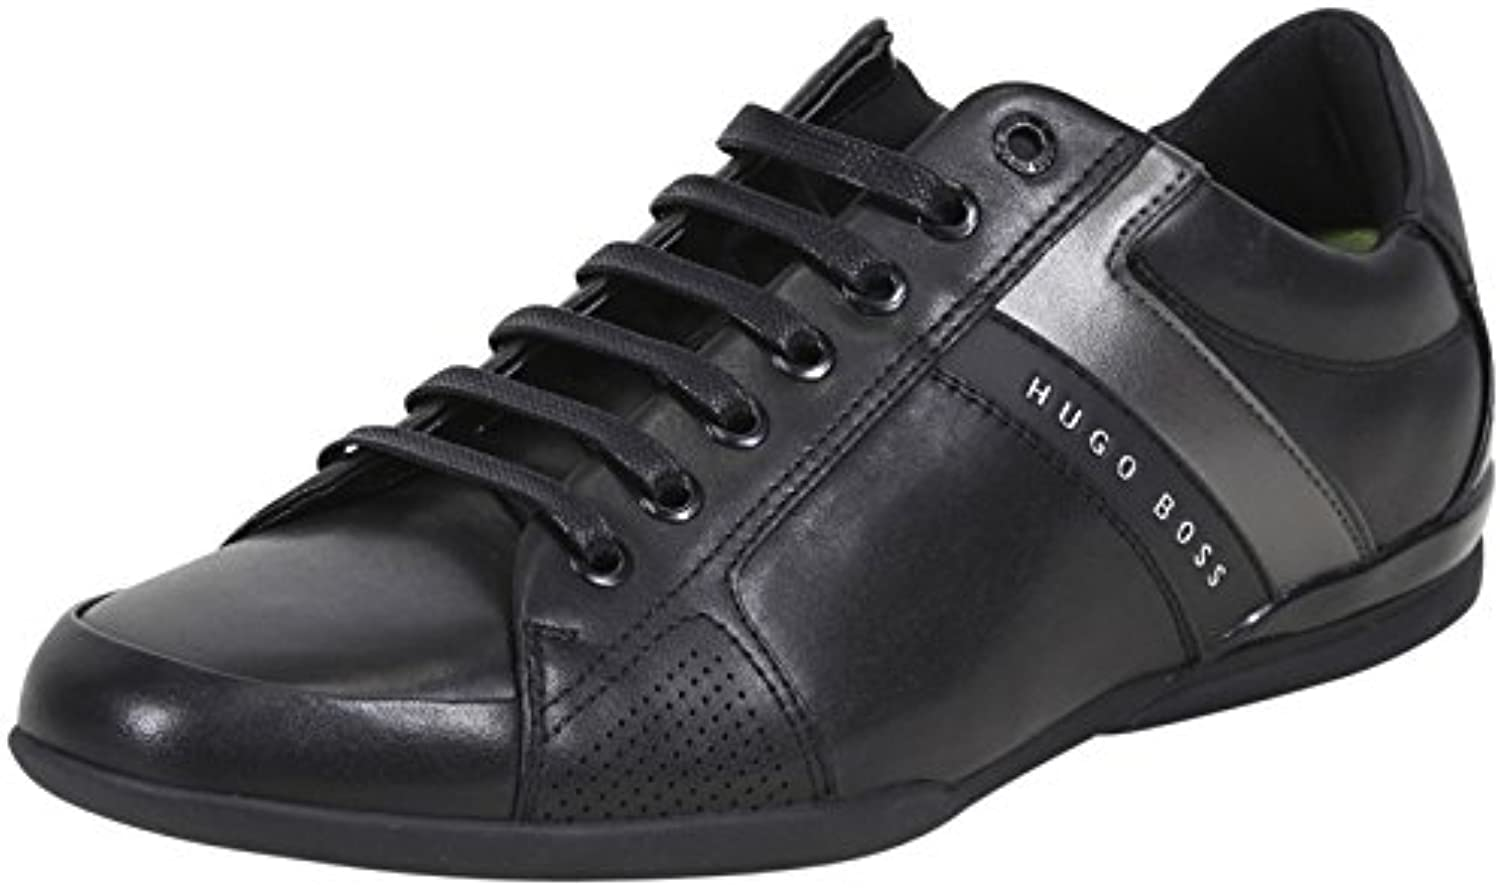 Hugo Boss Space_Lowp_Lux Sneakers Herren Schuhe